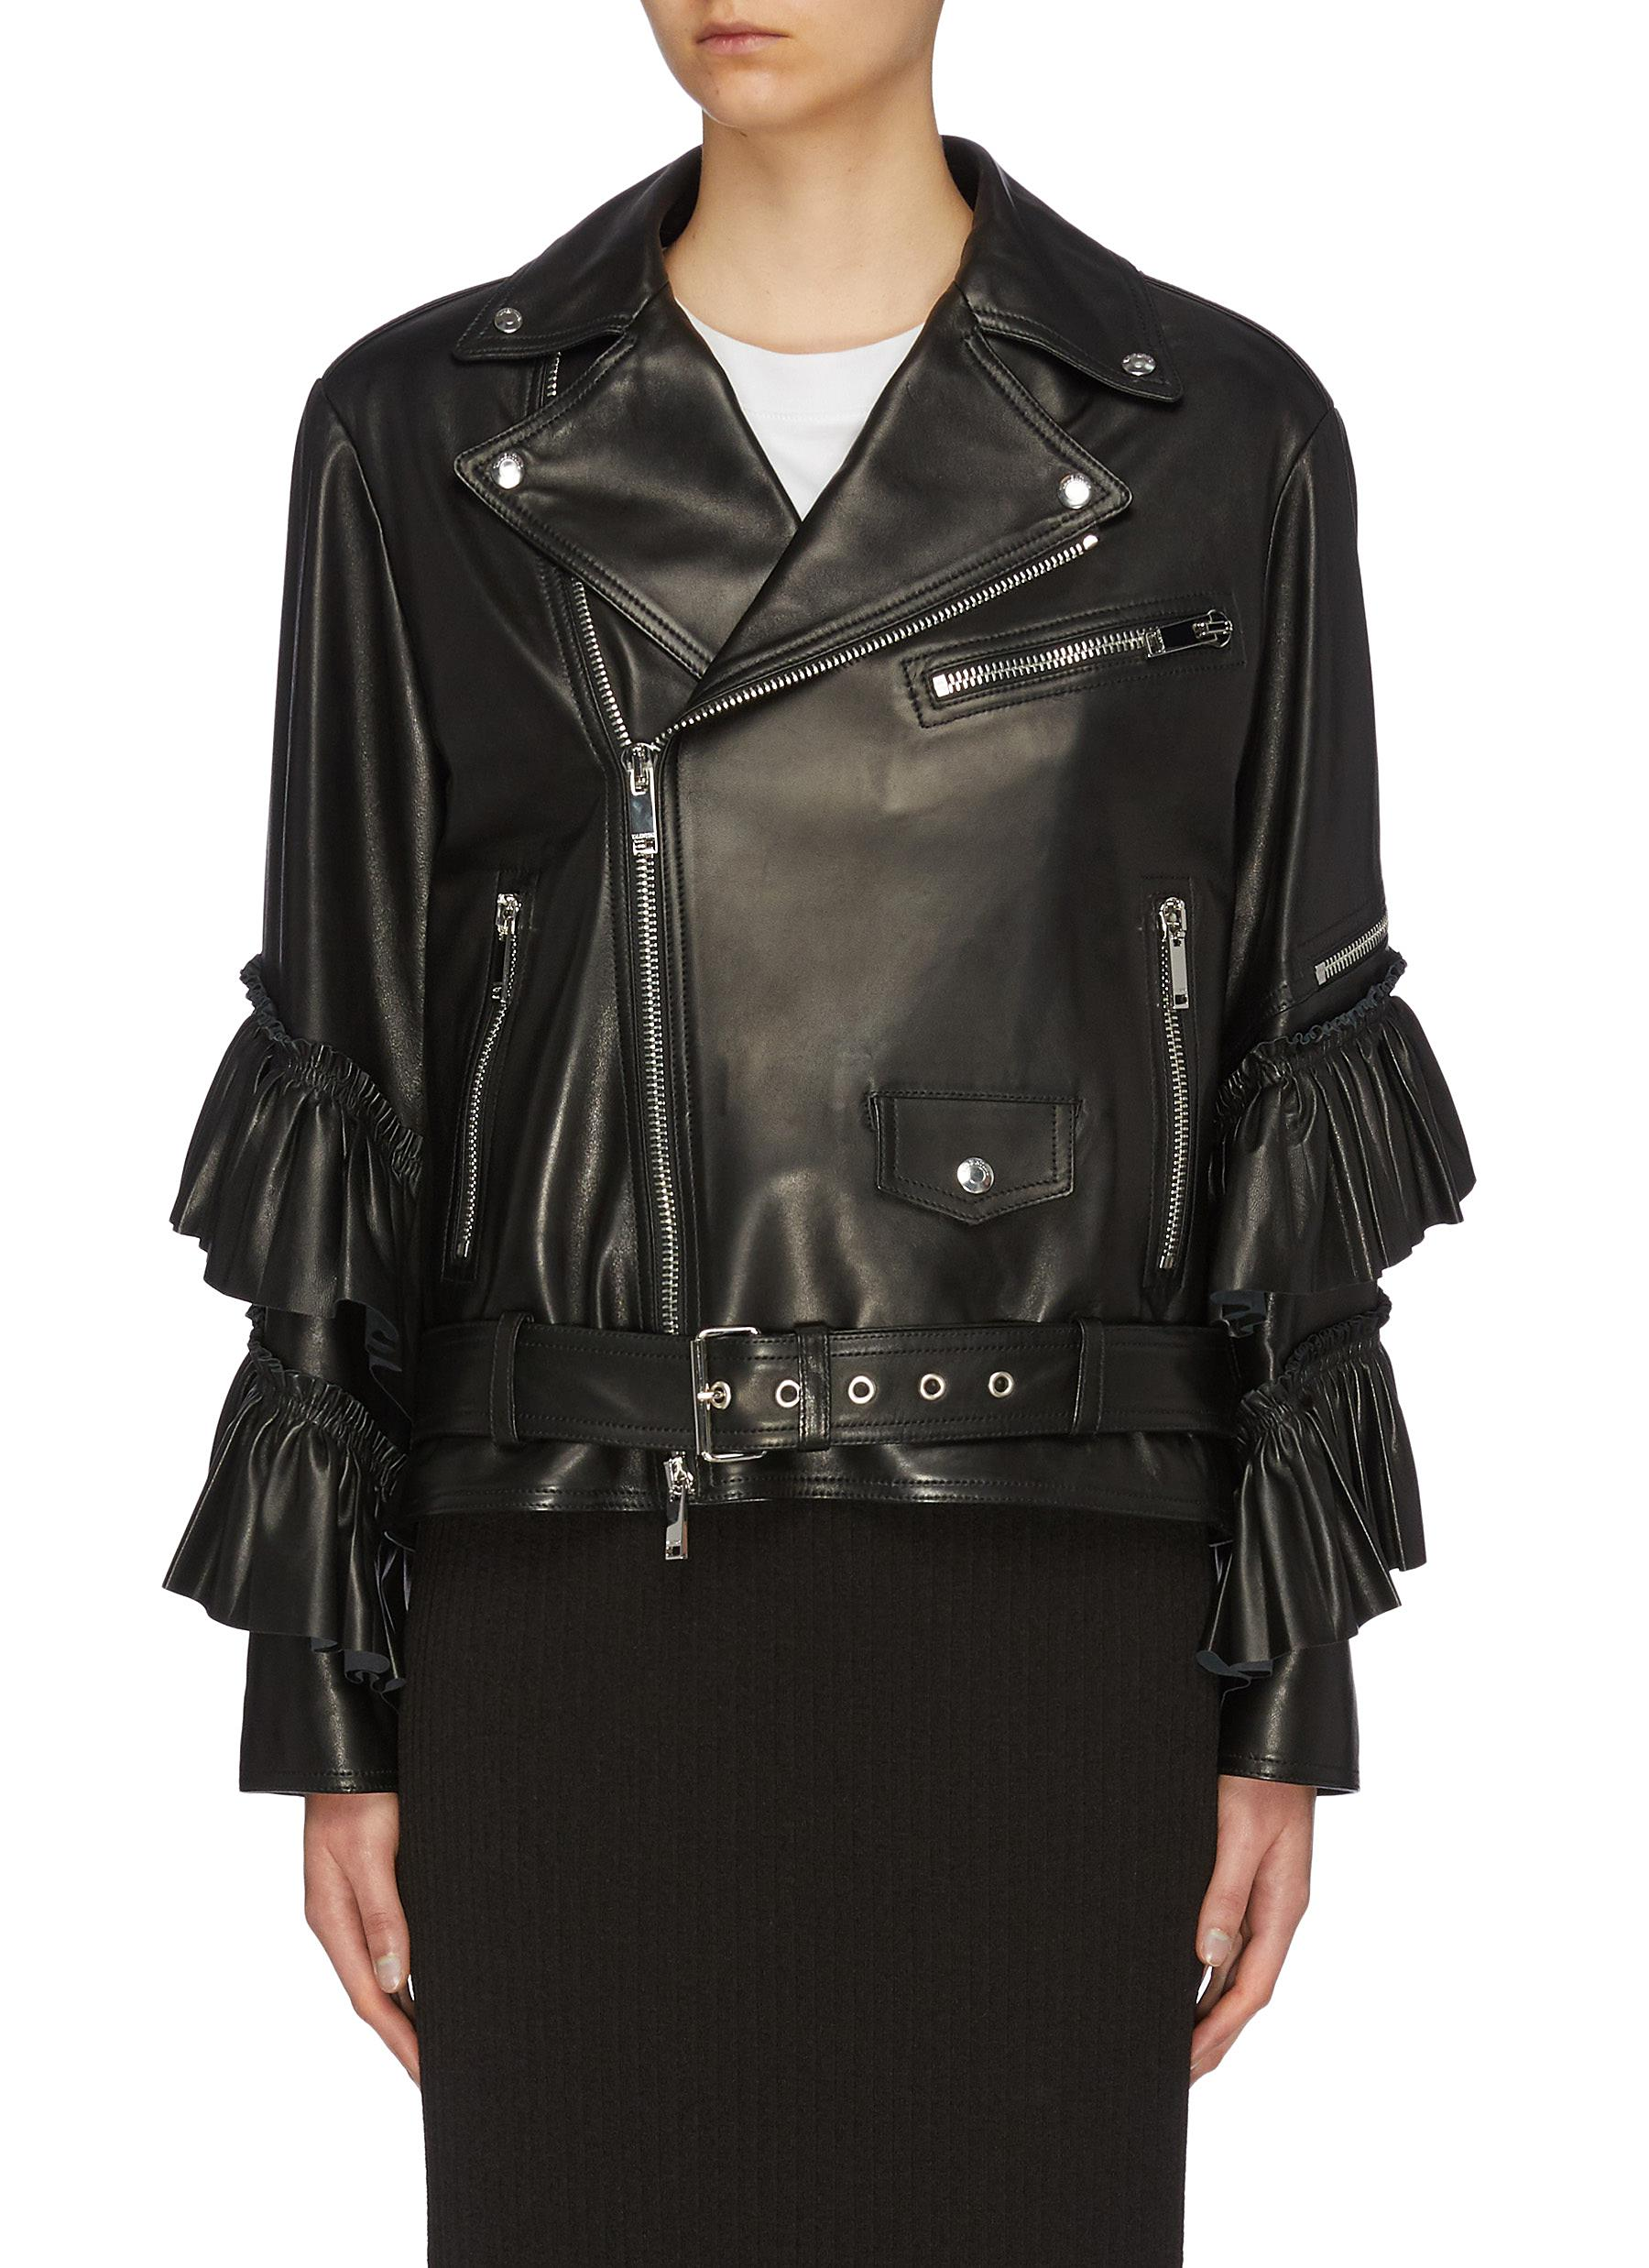 Tiered ruffle cuff belted leather biker jacket by Valentino